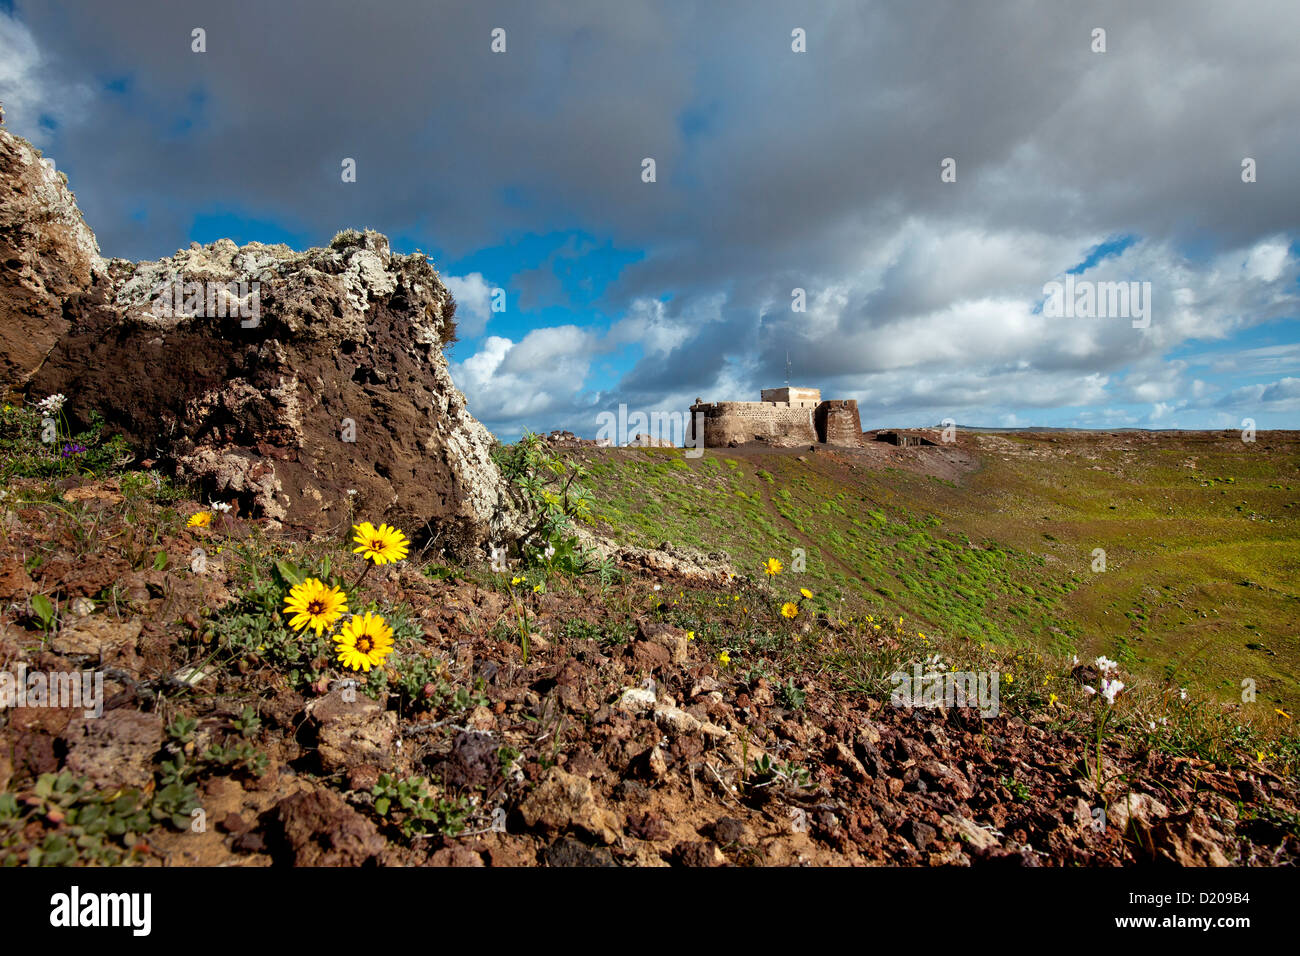 Castillo de Santa Barbara under clouded sky, Teguise, Lanzarote, Canary Islands, Spain, Europe - Stock Image